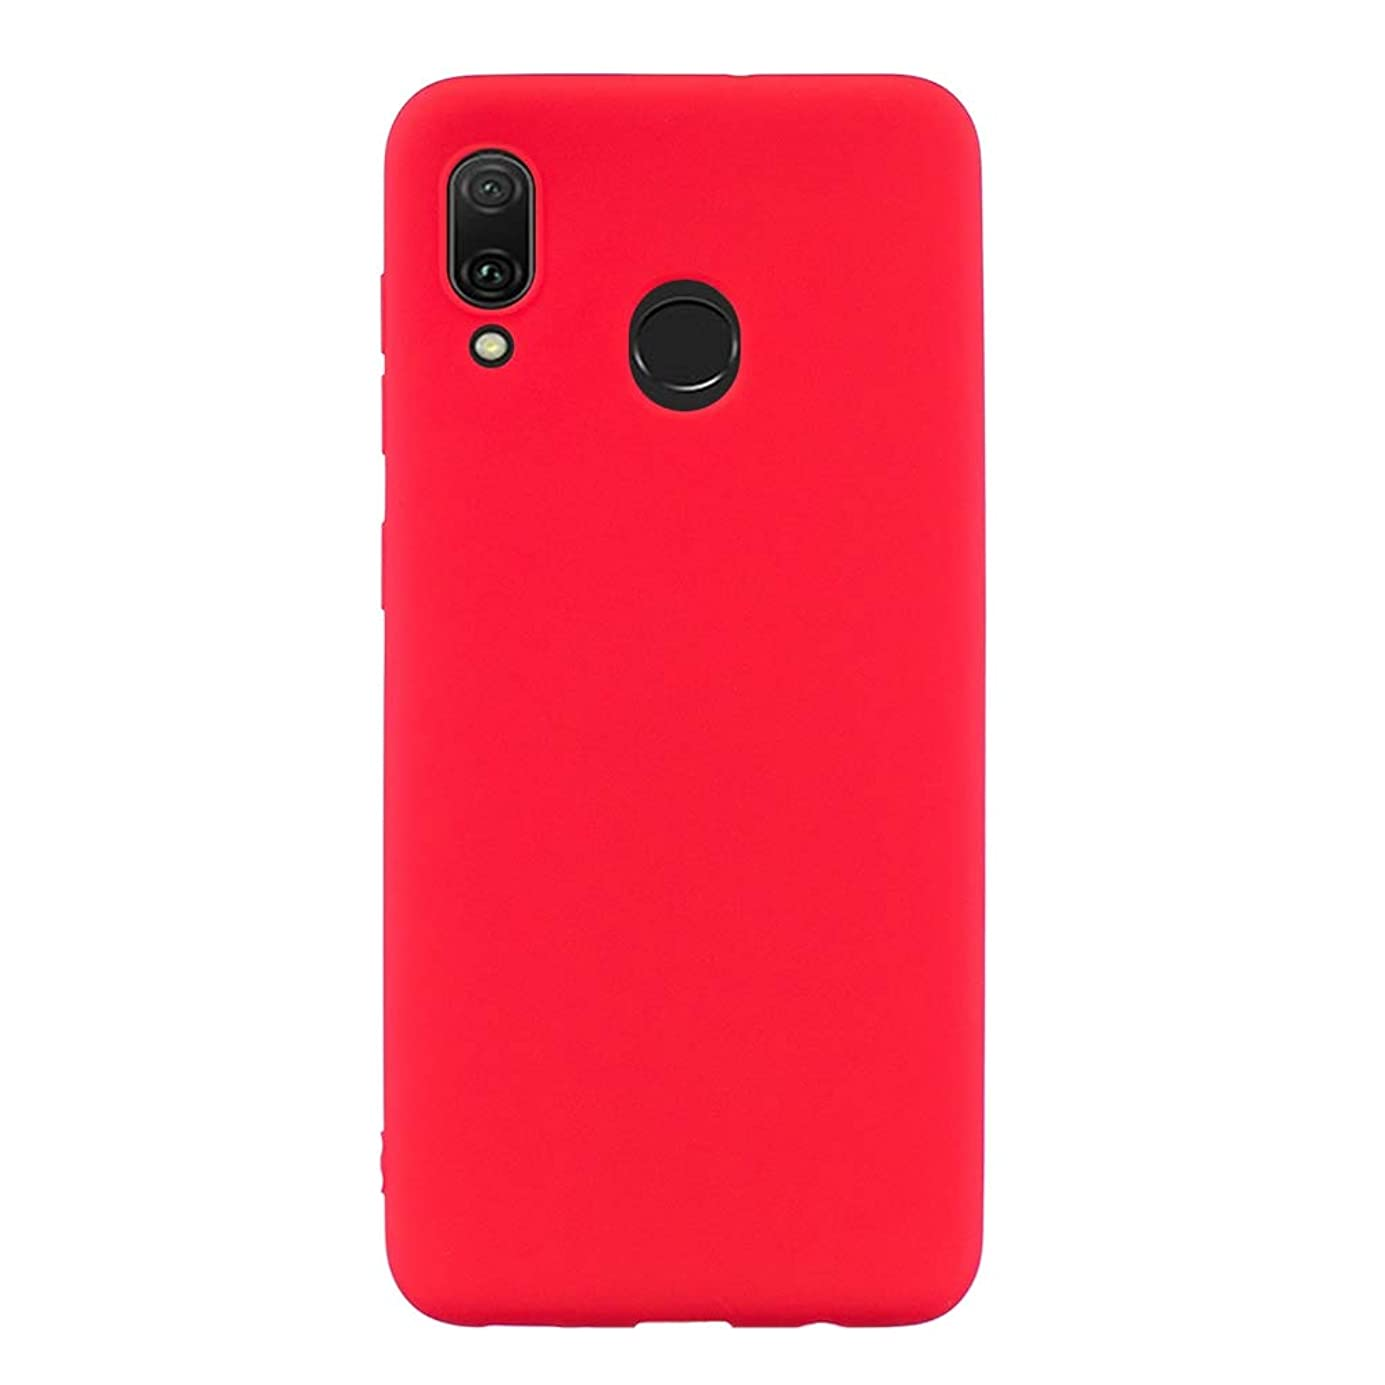 Huawei Y9 (2019) Case, SHUNDA Ultra Slim Soft TPU Silicone Matte Case Shockproof Bumper Protective Phone Cover for Huawei Y9 (2019) - Red dsriqr4785